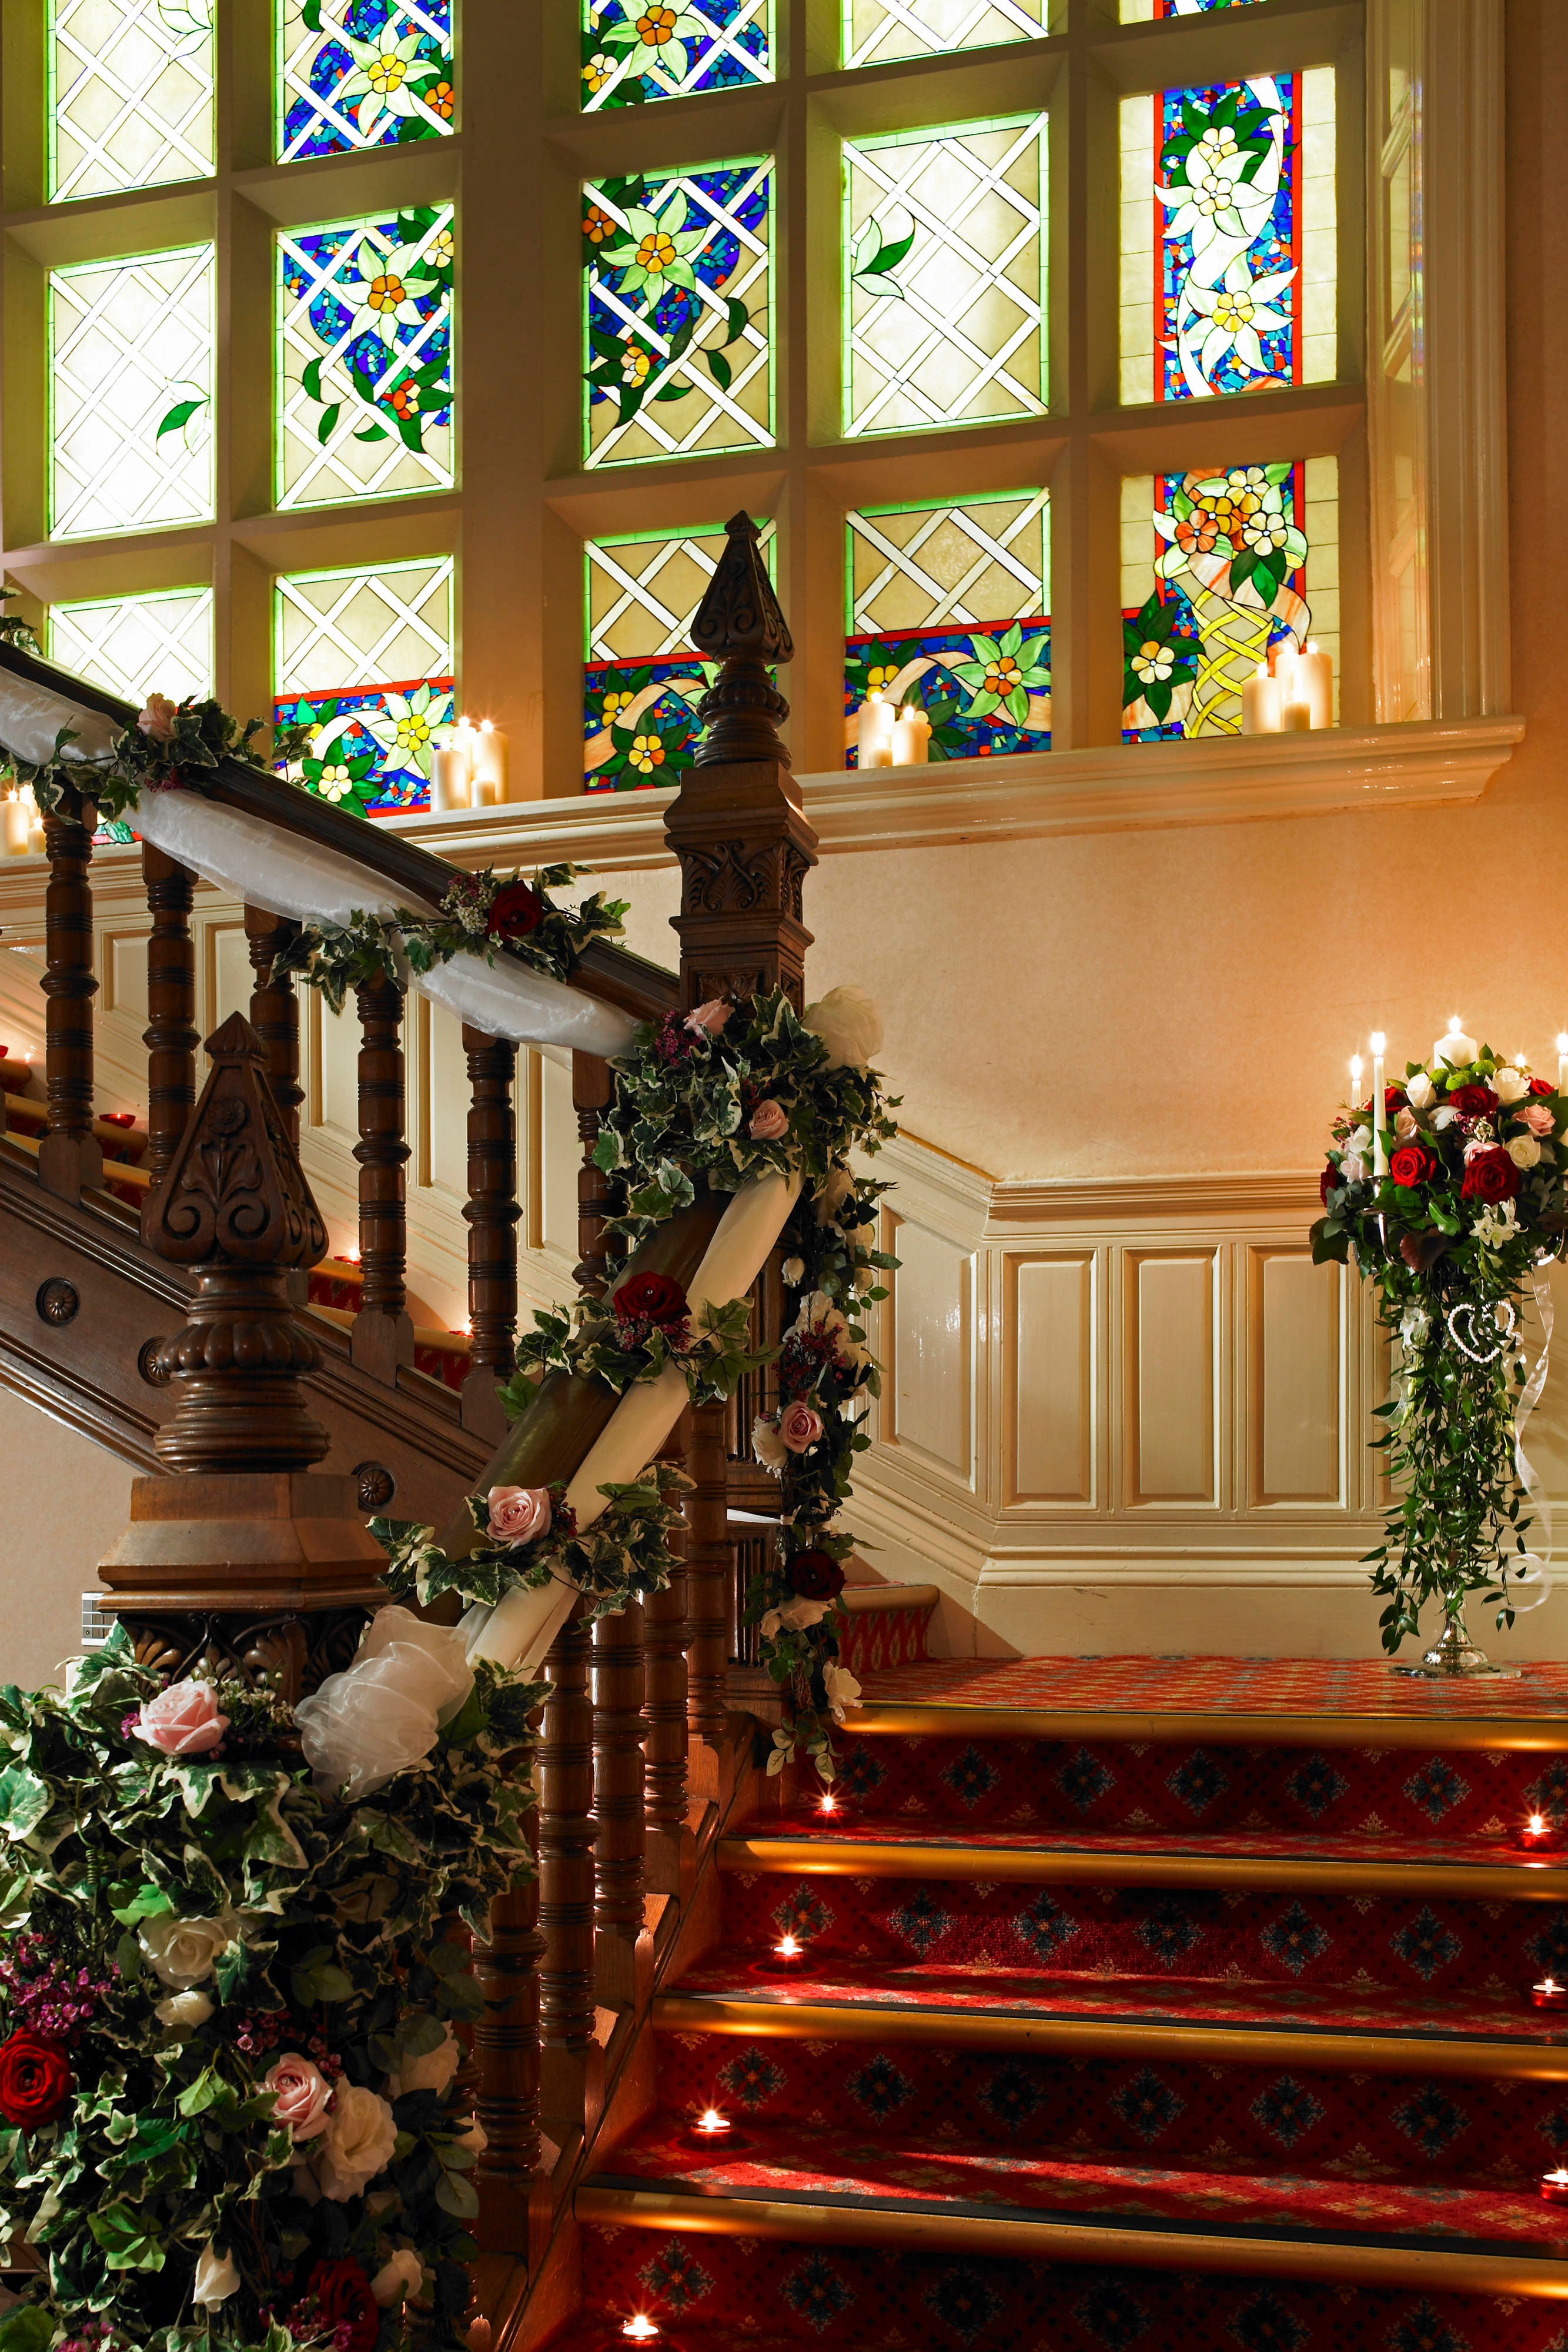 Escalera del Hollins Hall